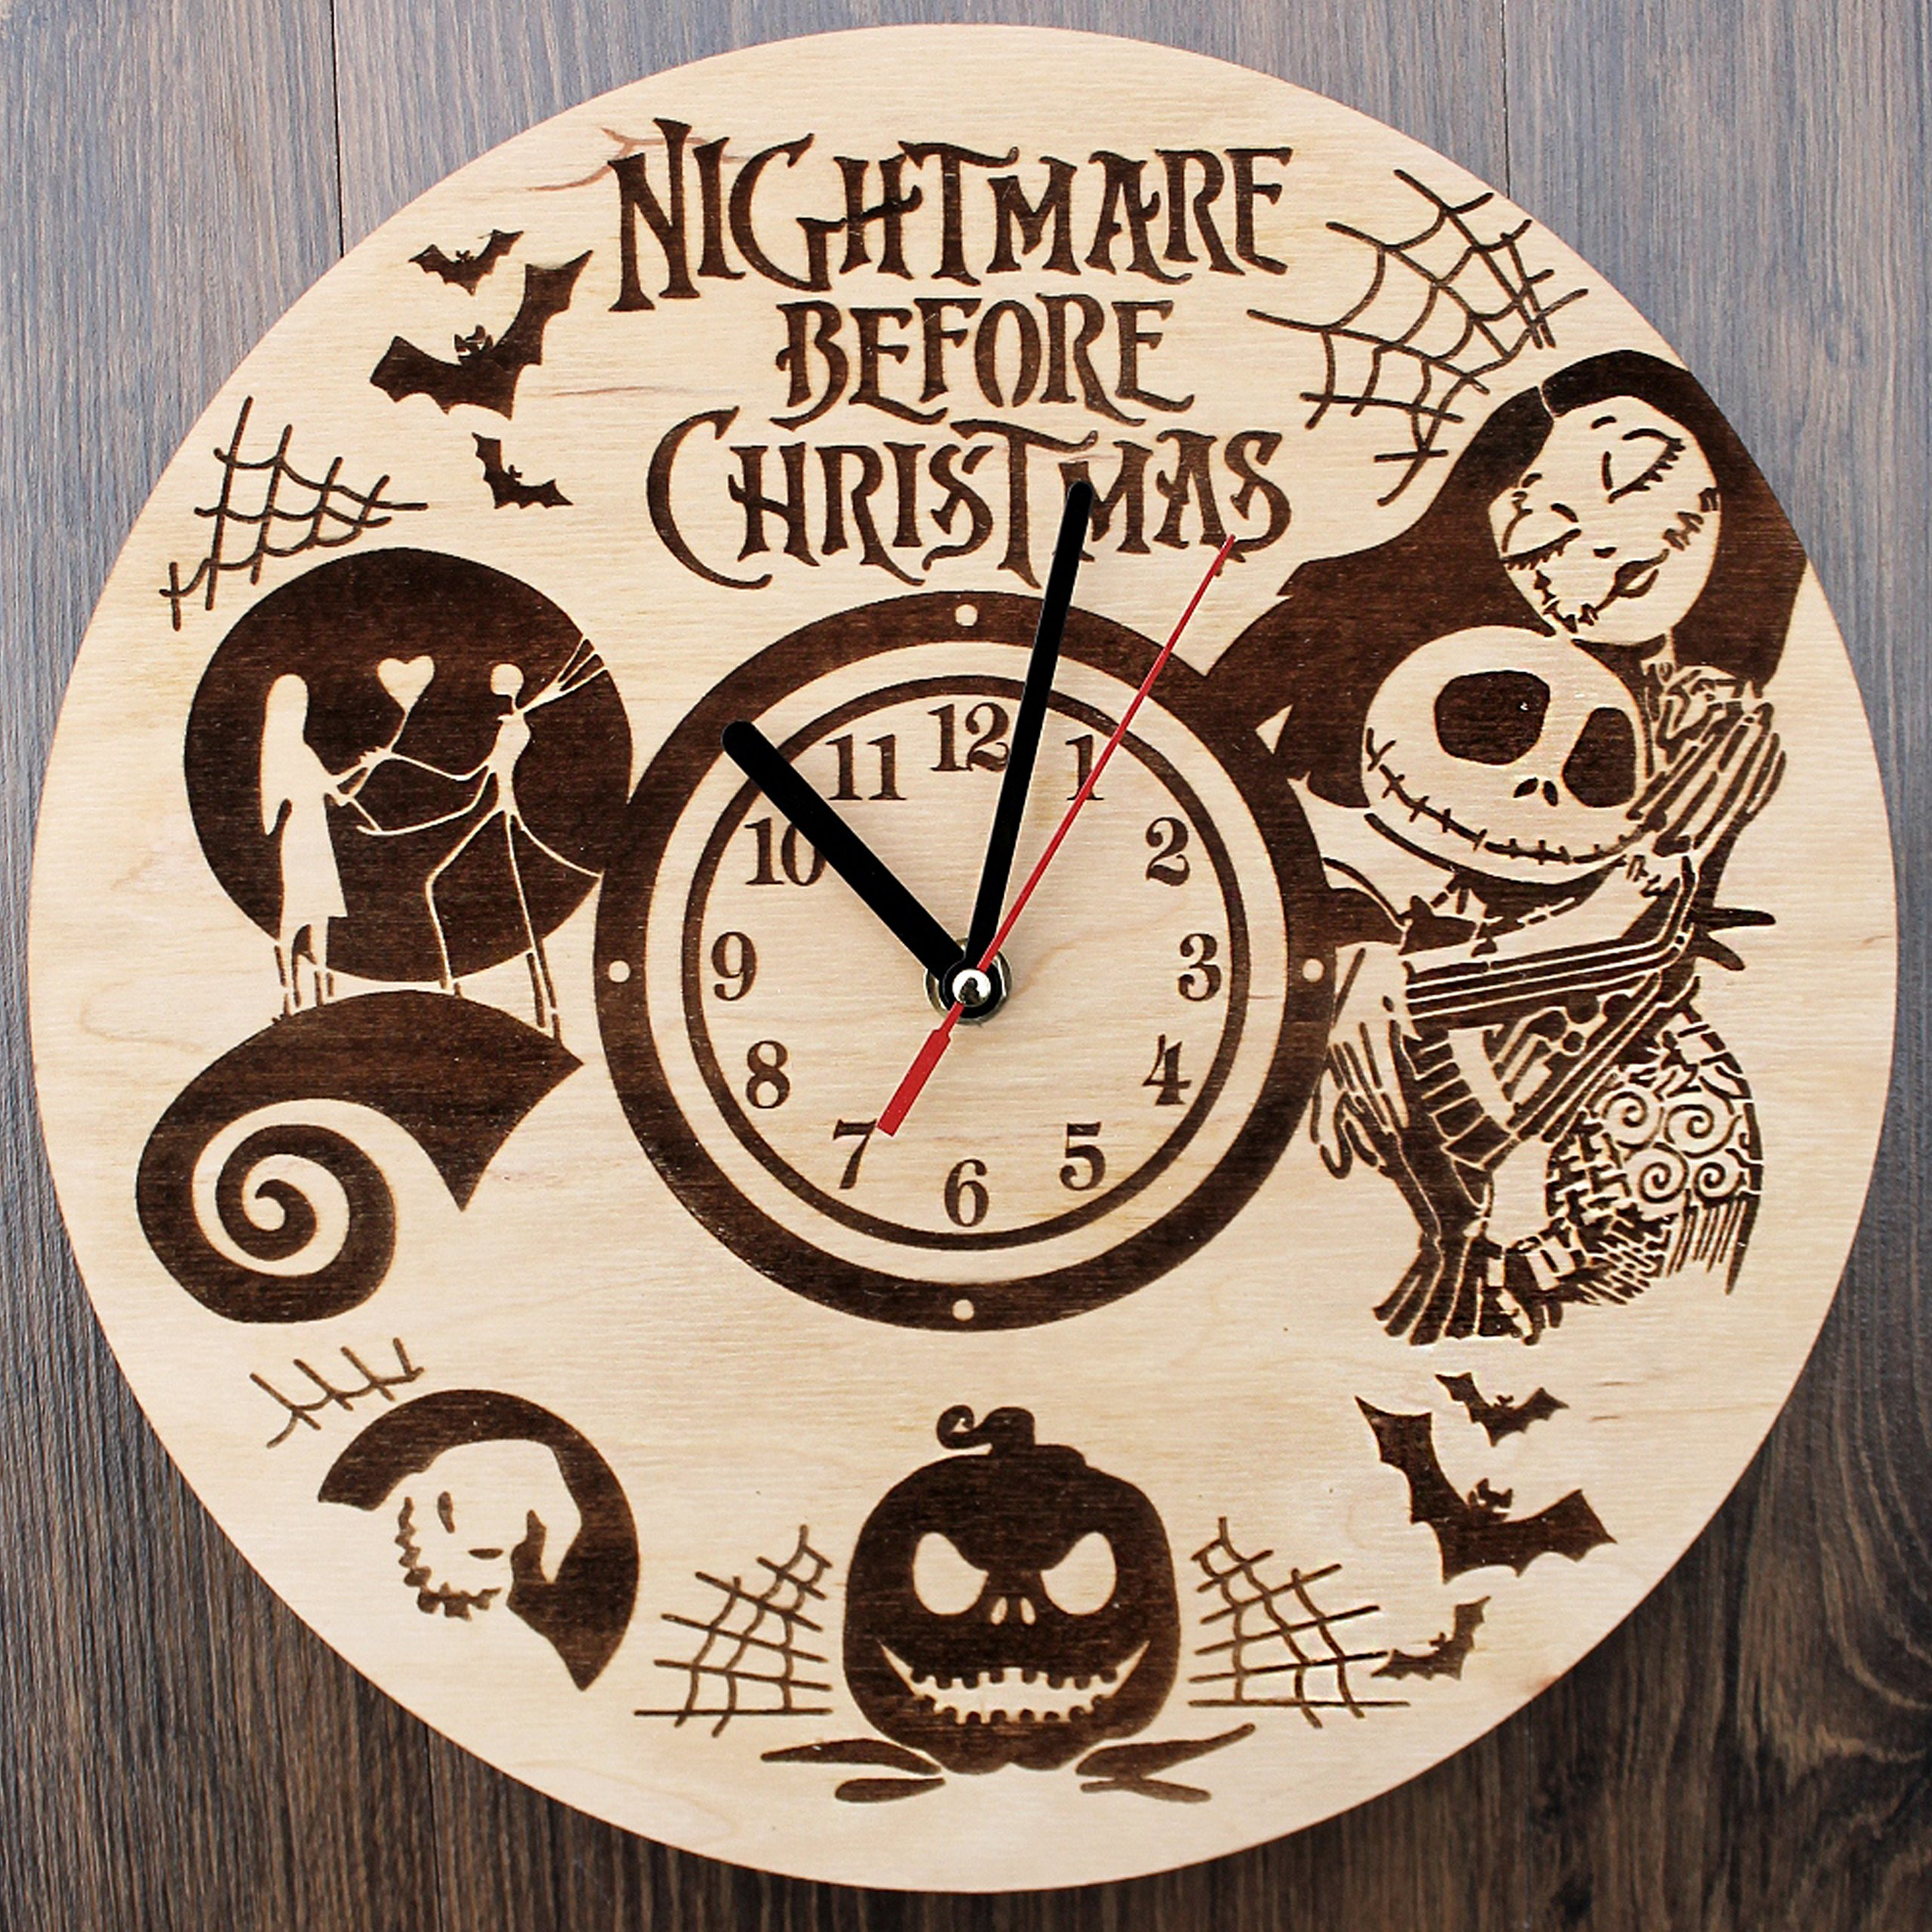 Jack Skellington Sally Nightmare before Christmas Design Real Wood Wall Clock - Eco Friendly Natural Nursery Wall Decor - Creative Gift Idea for Teens and Youth